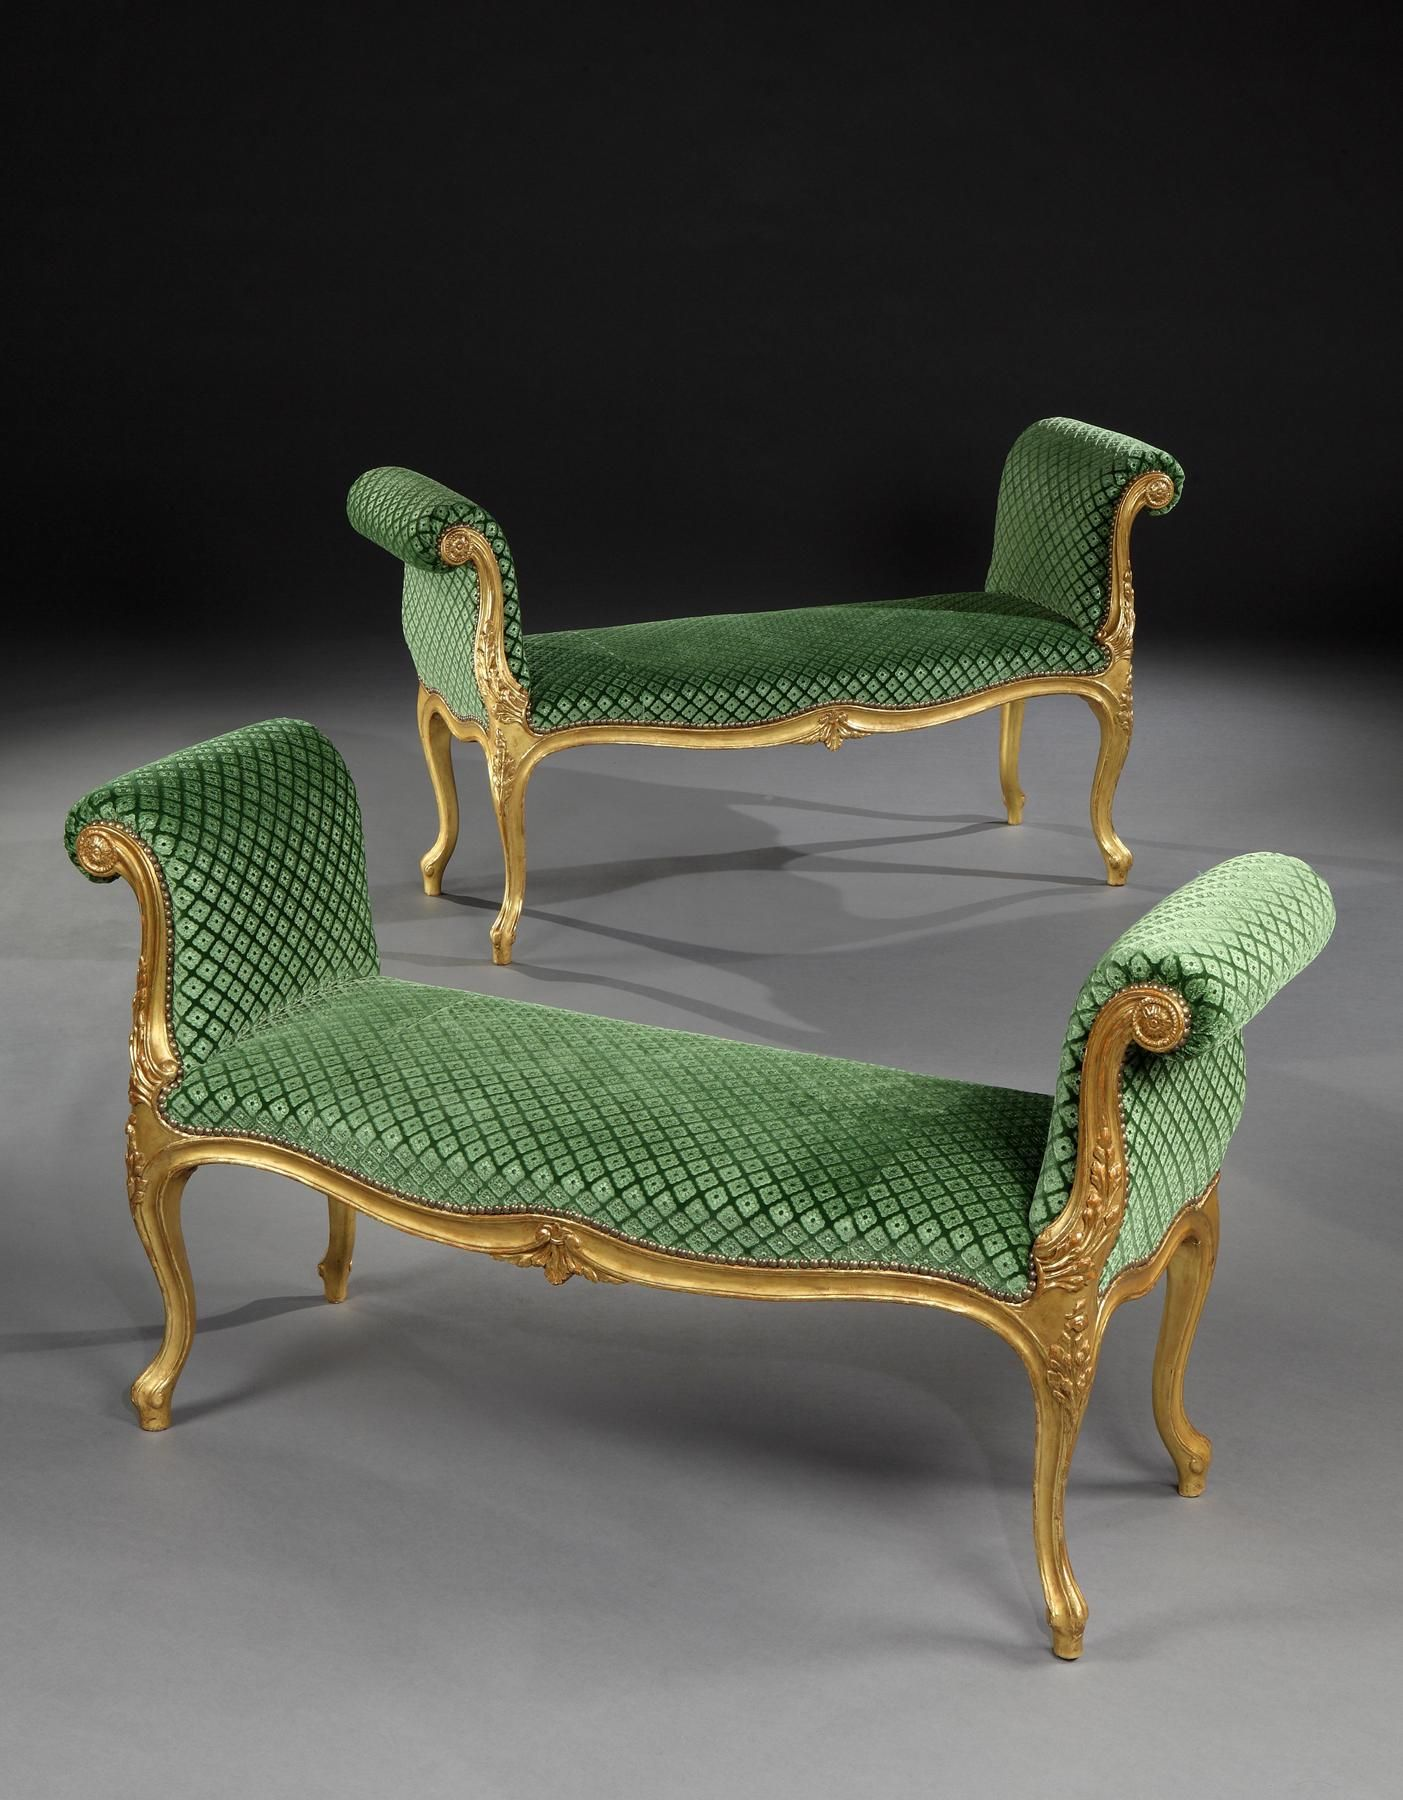 A Pair Of George Iii Giltwood Window Seats For Sale On Masterart Com Regency Furniture Furniture Antique Furniture